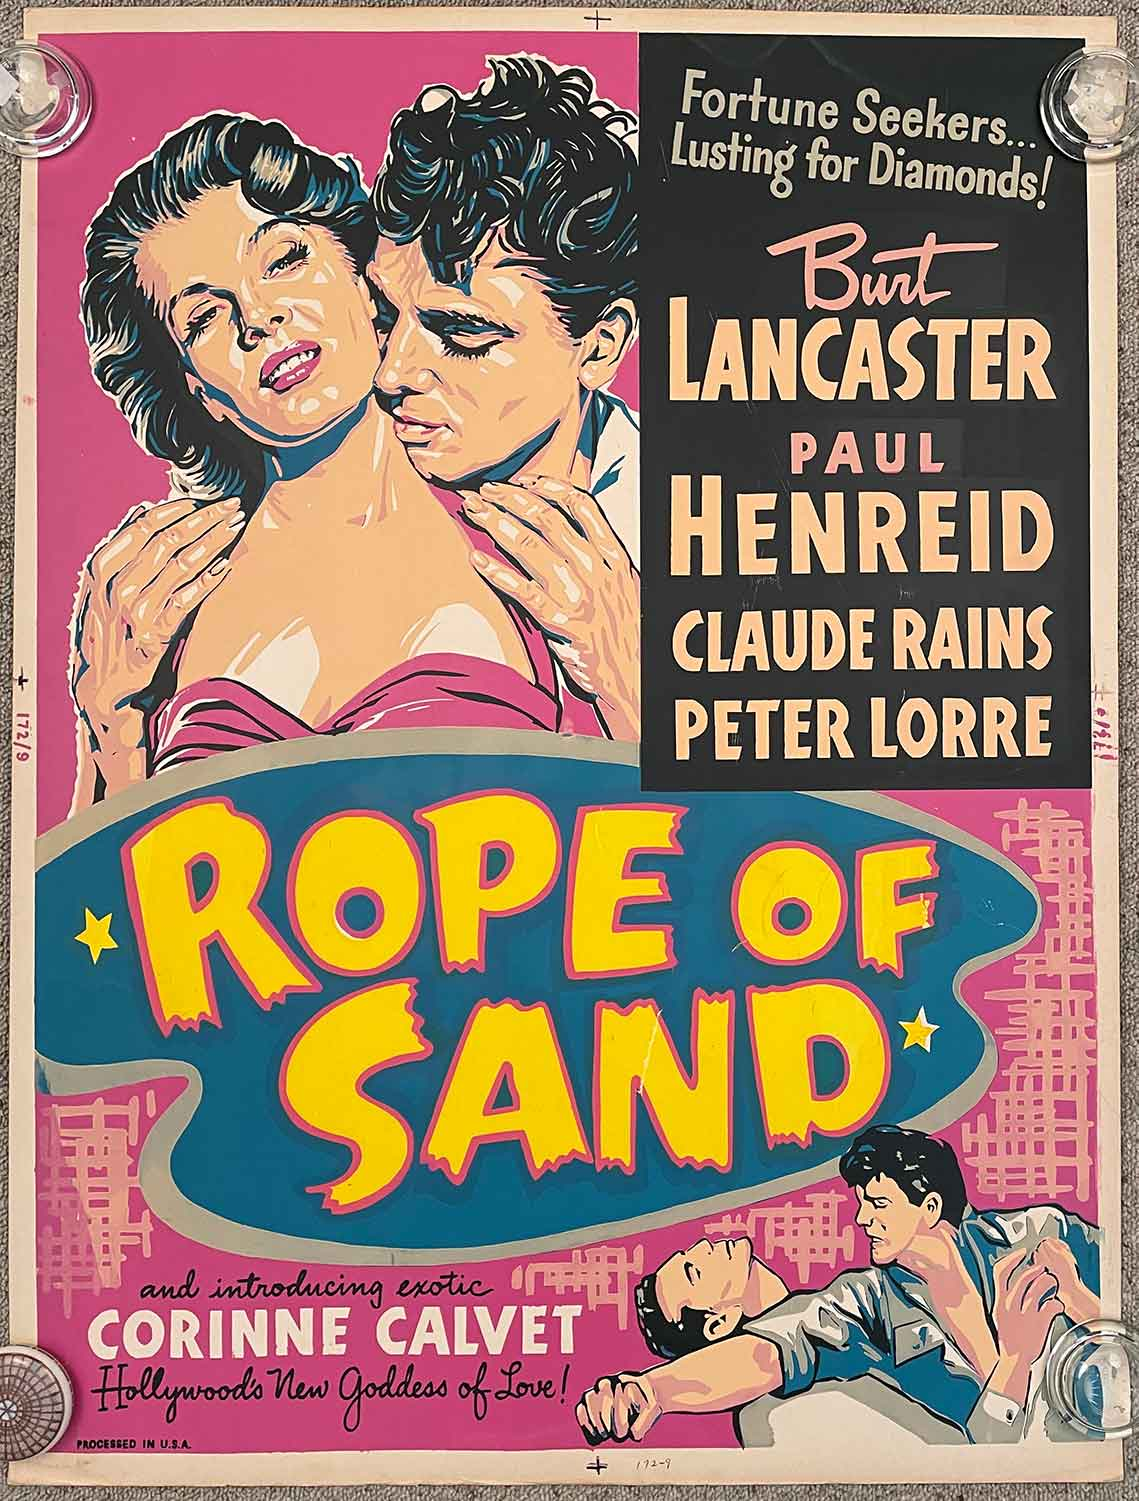 Rope of Sand. (Movie Poster) FILM NOIR)